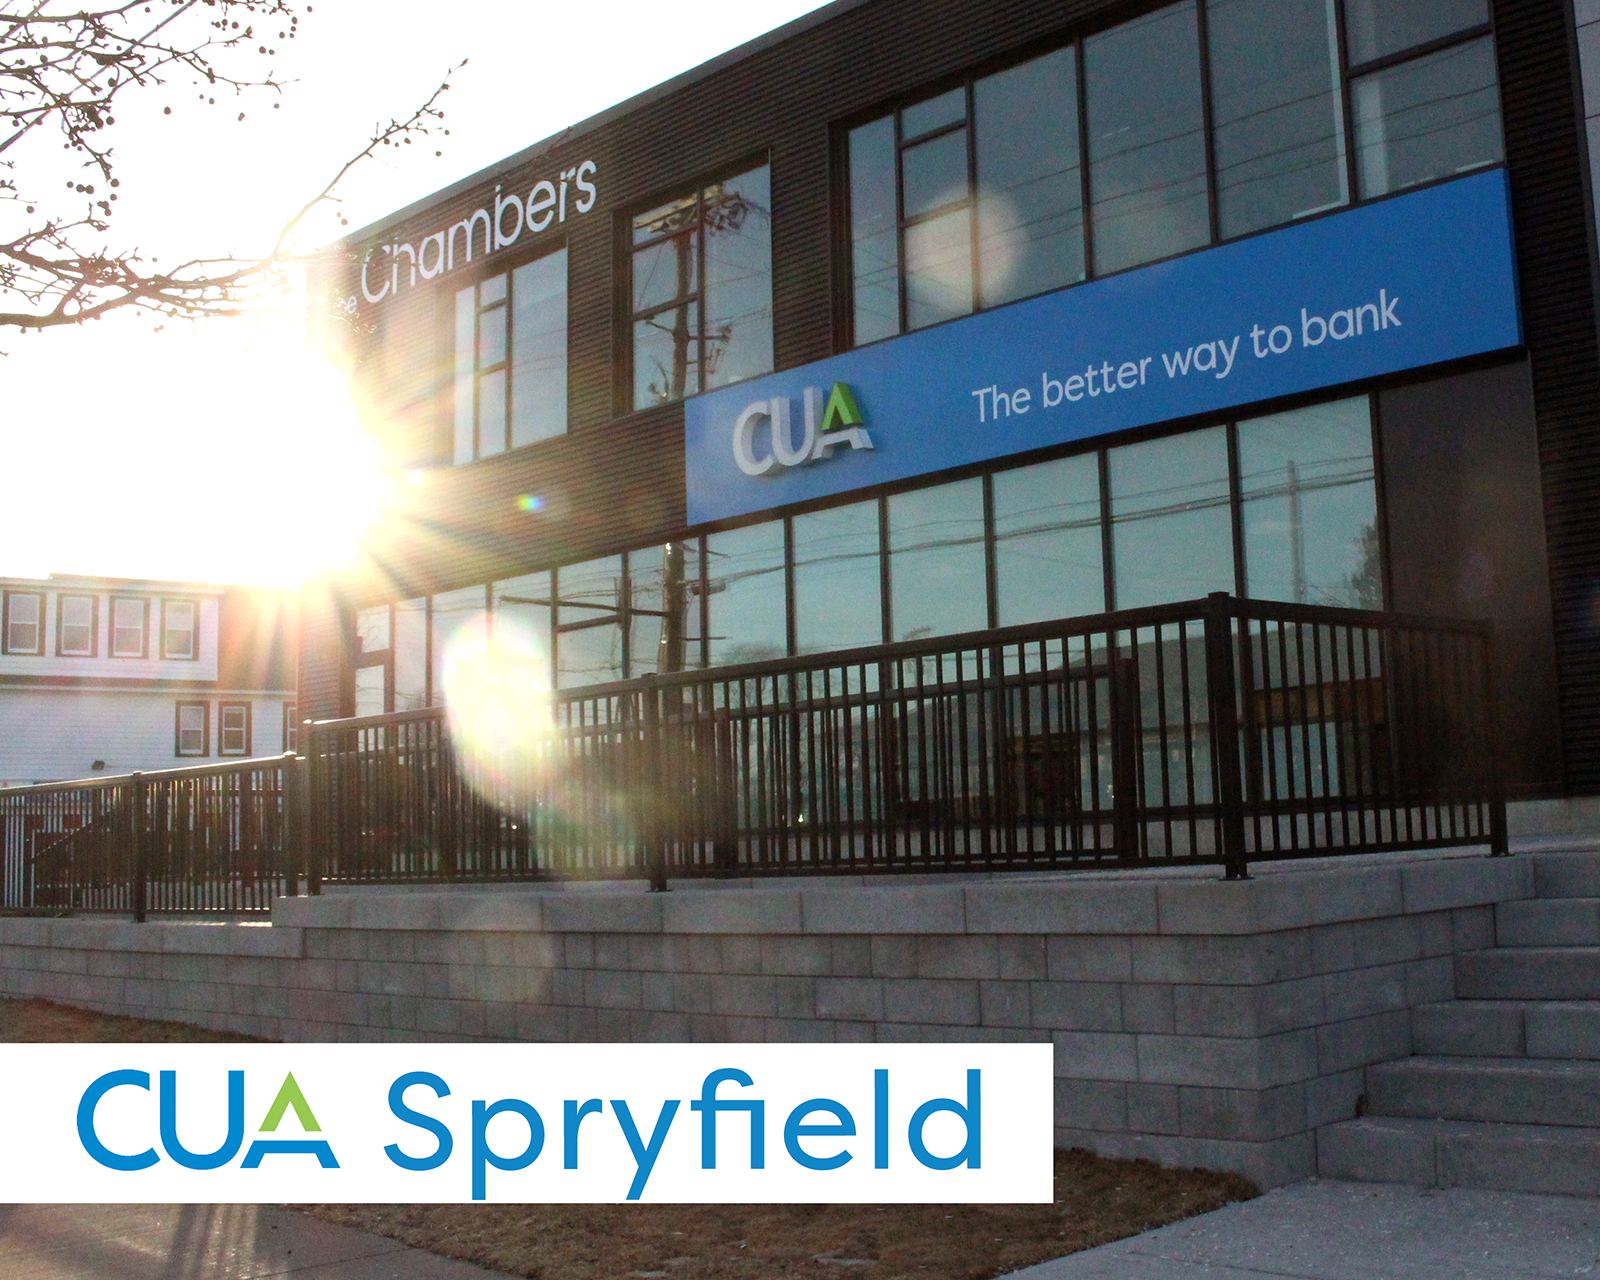 Outside shot of front of new CUA Spryfield branch